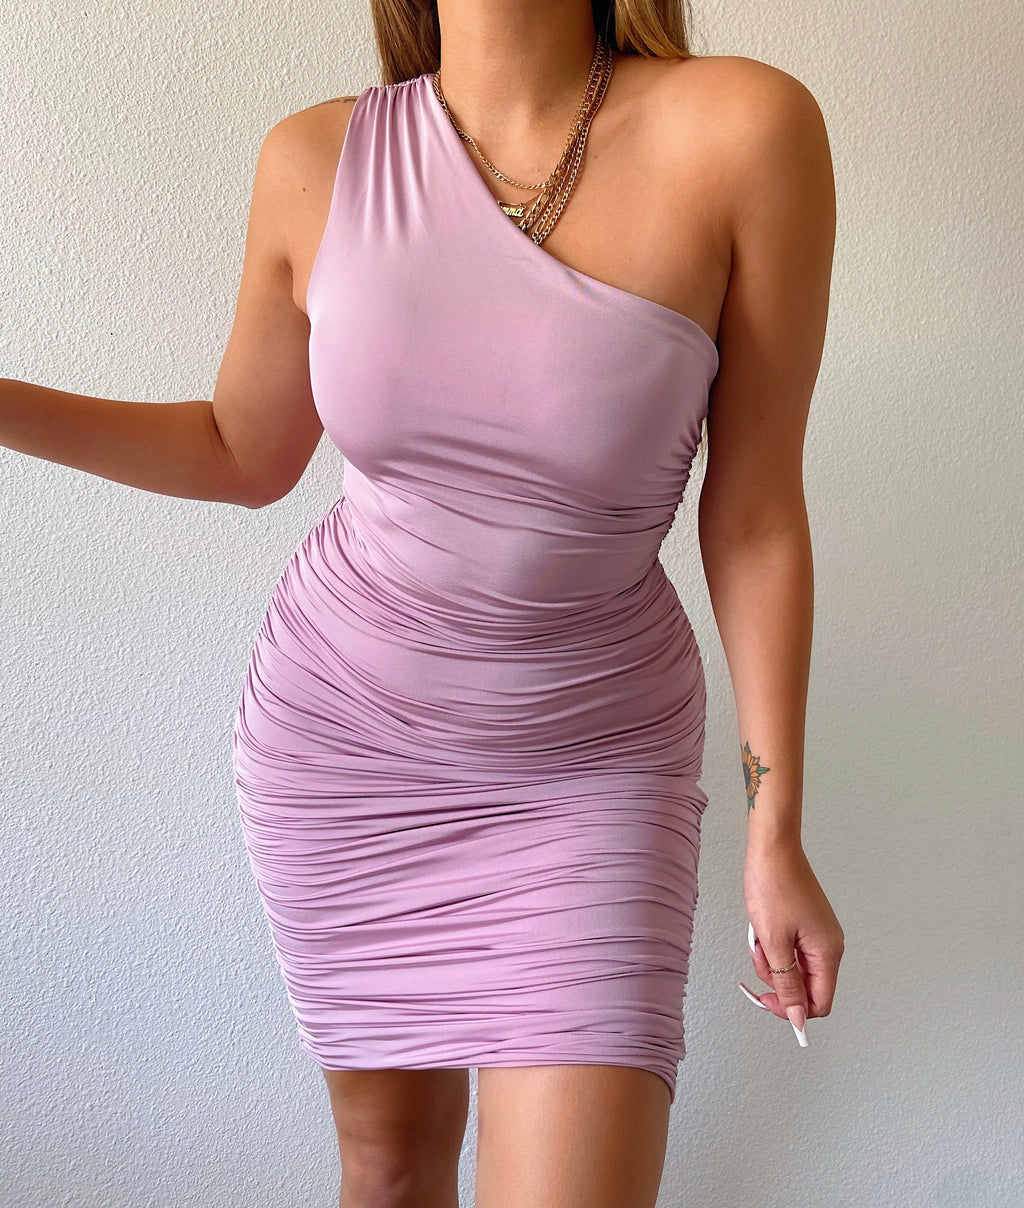 Brielle dress (lavender)